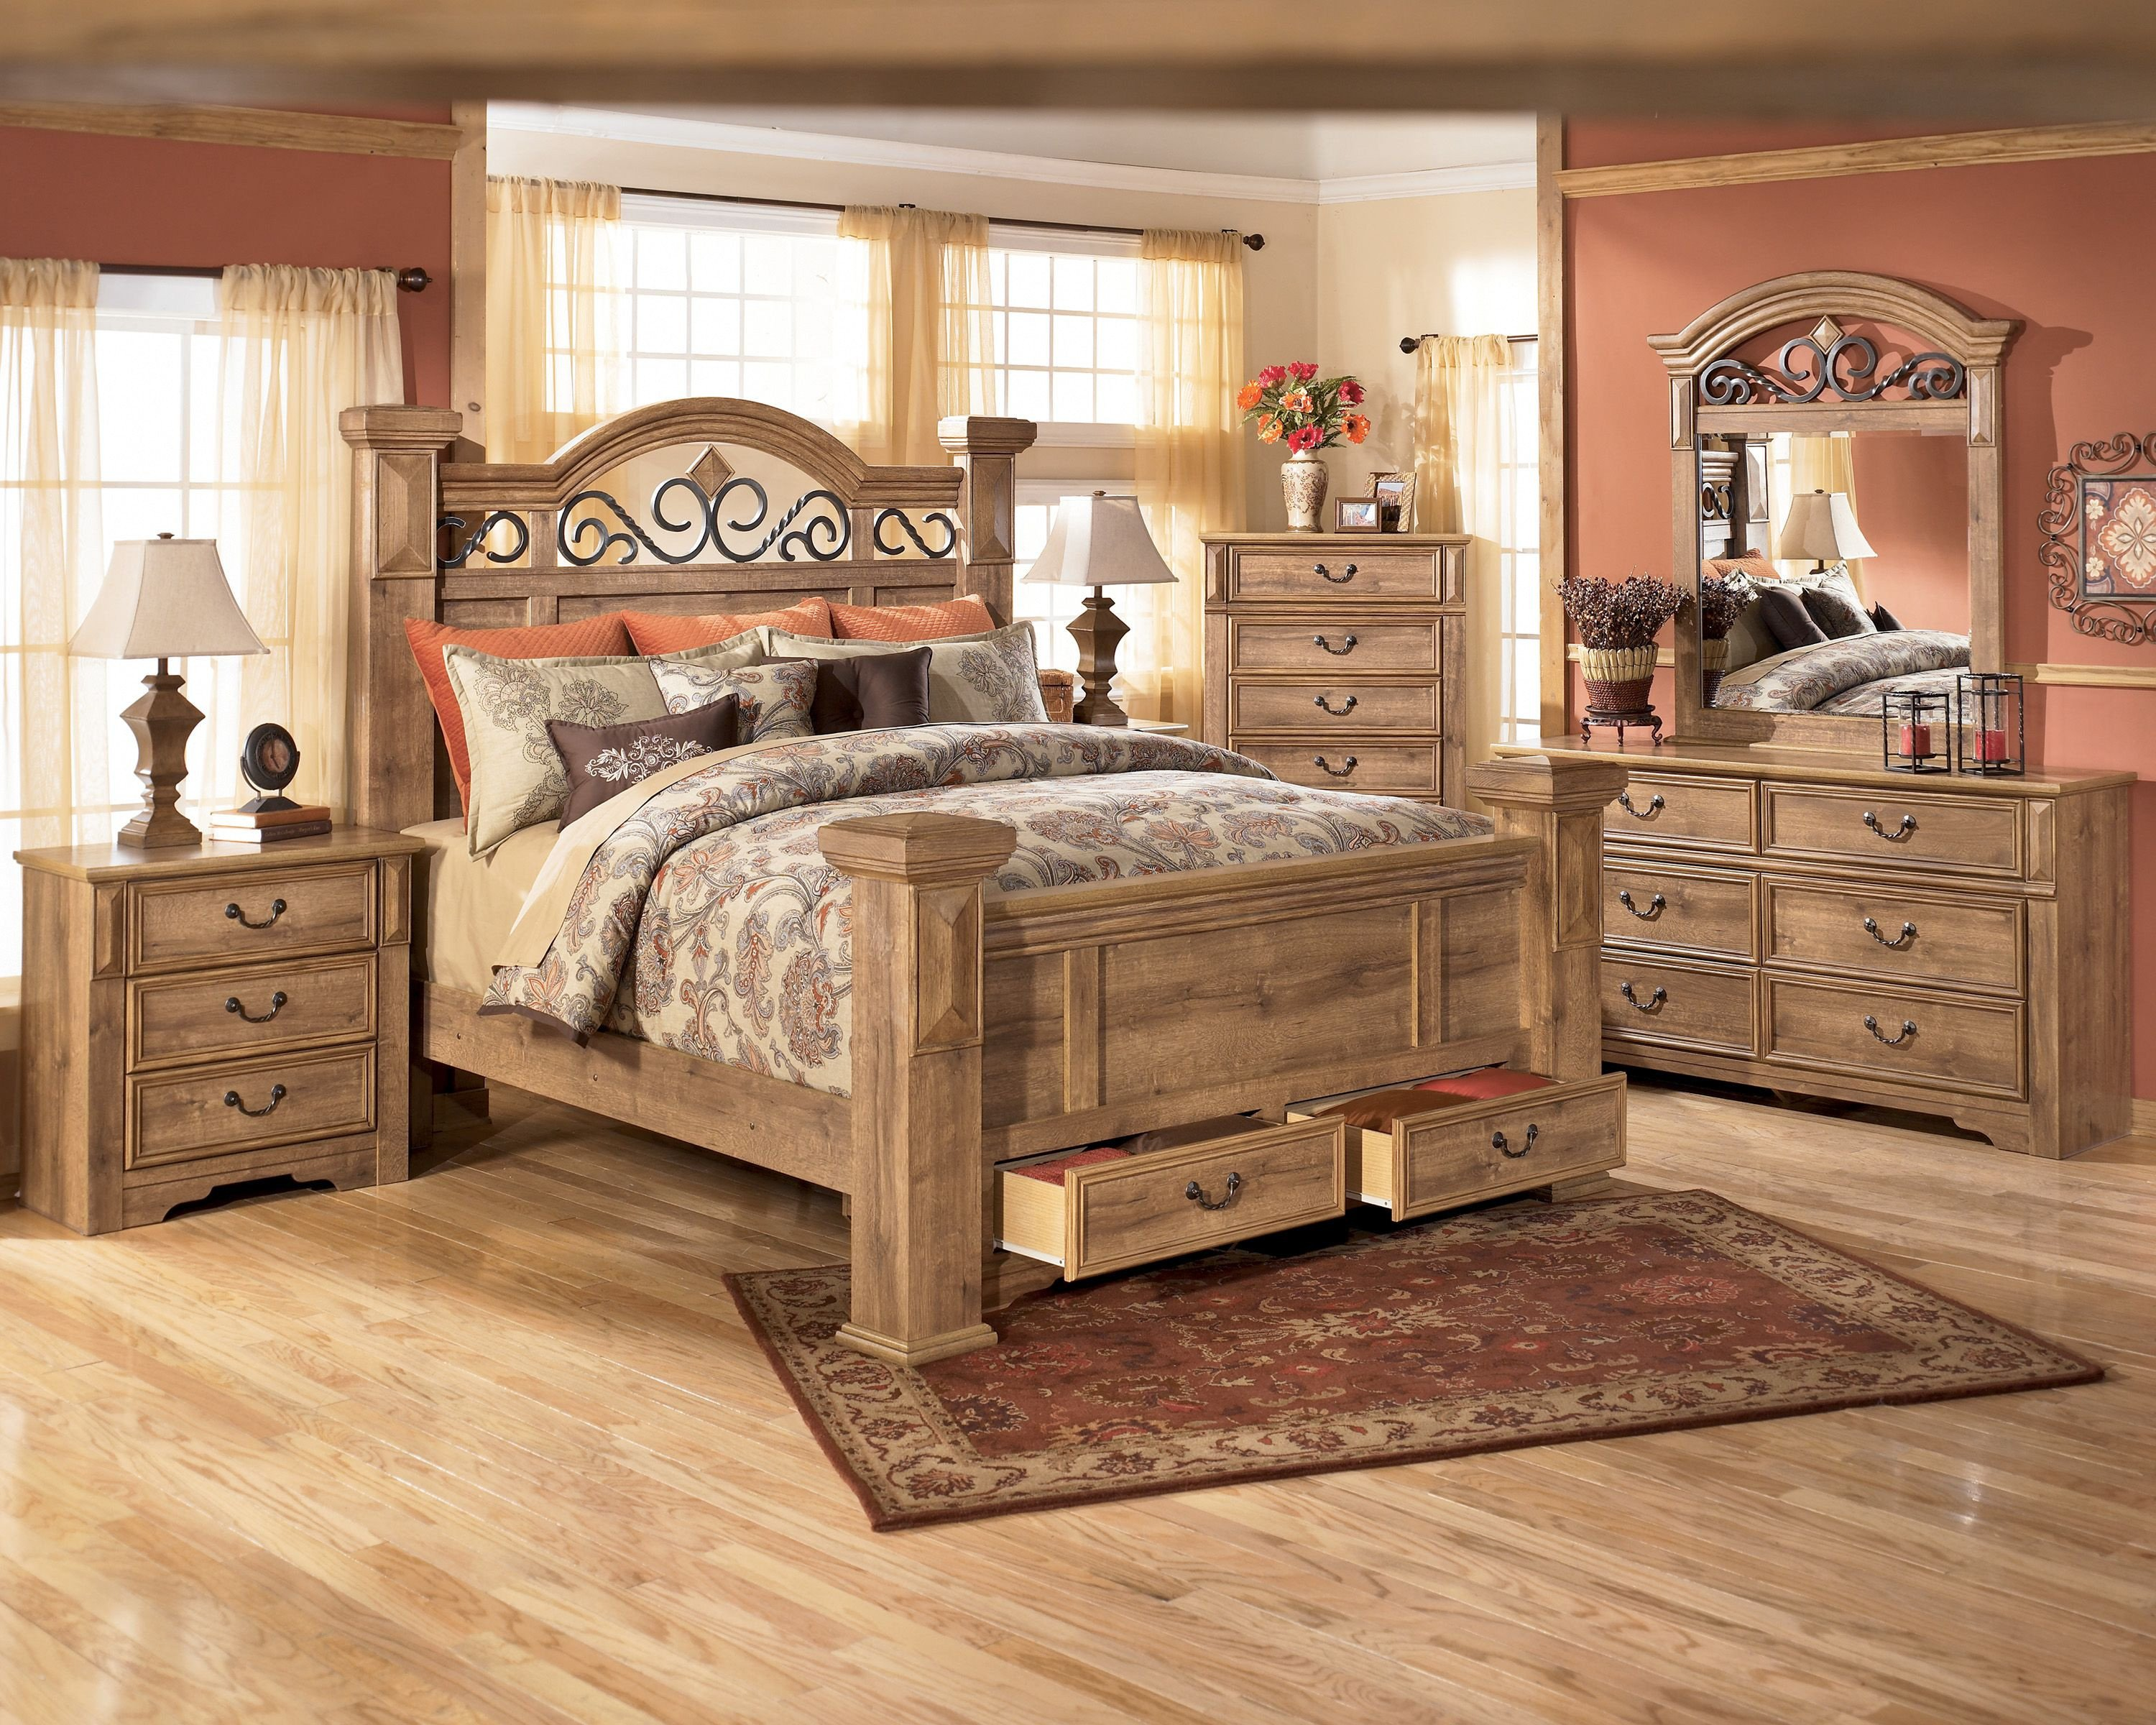 Ashley Furniture Bedroom Set Price Best Of Awesome Awesome Full Size Bed Set 89 Home Decorating